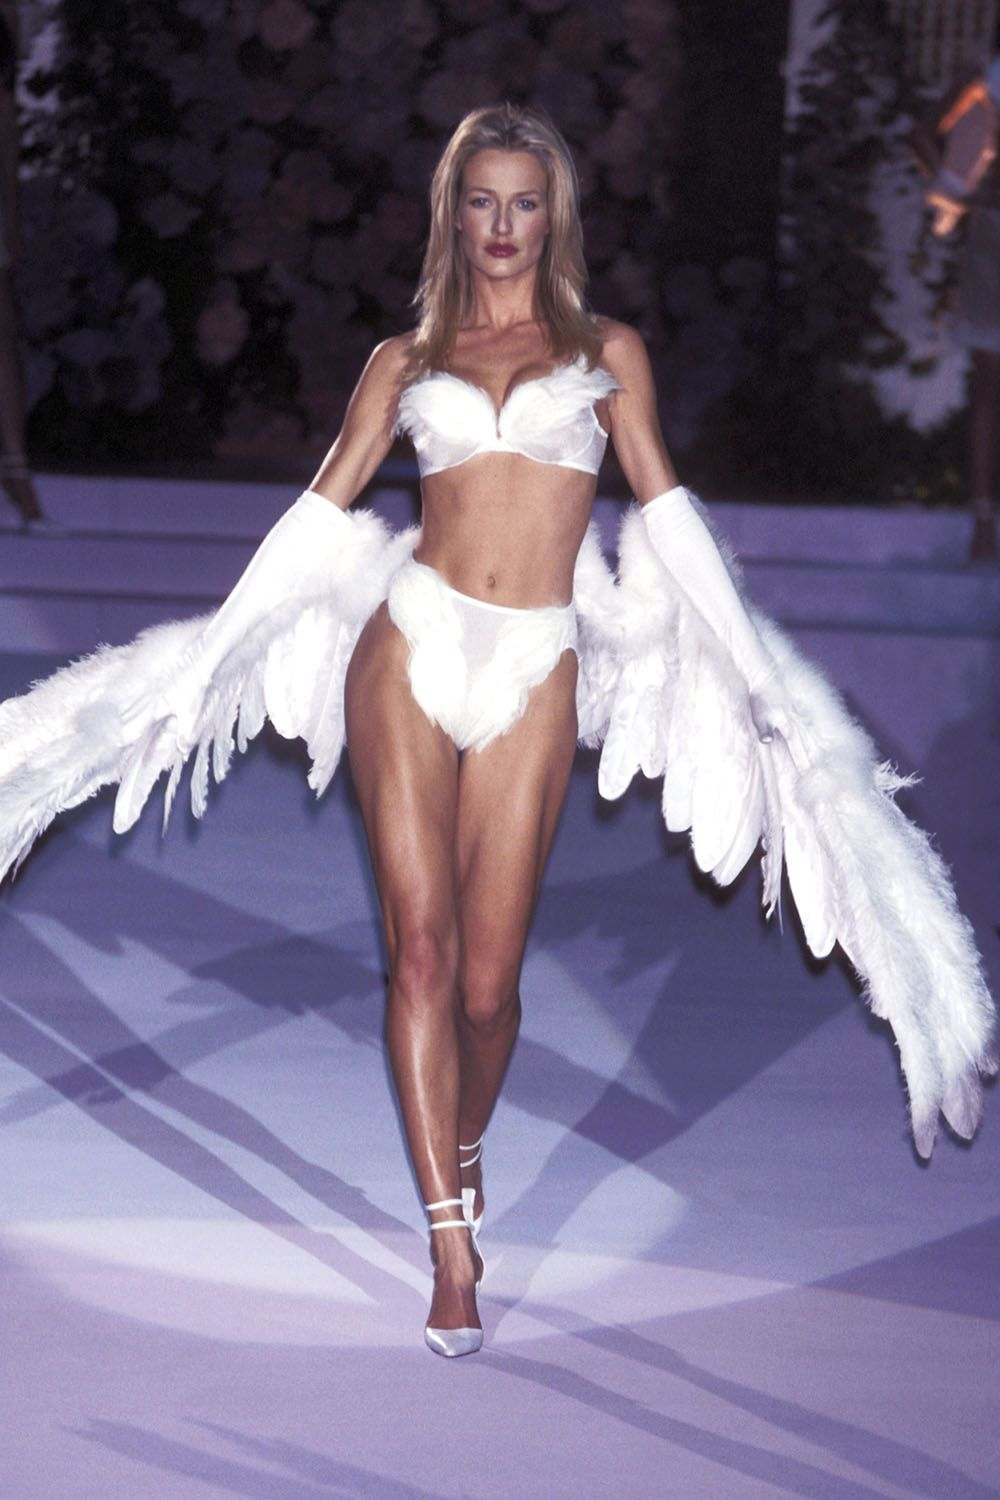 651d8789b2 Victoria s Secret Fashion Show History in Photos - Victoria s Secret Models  Over The Years